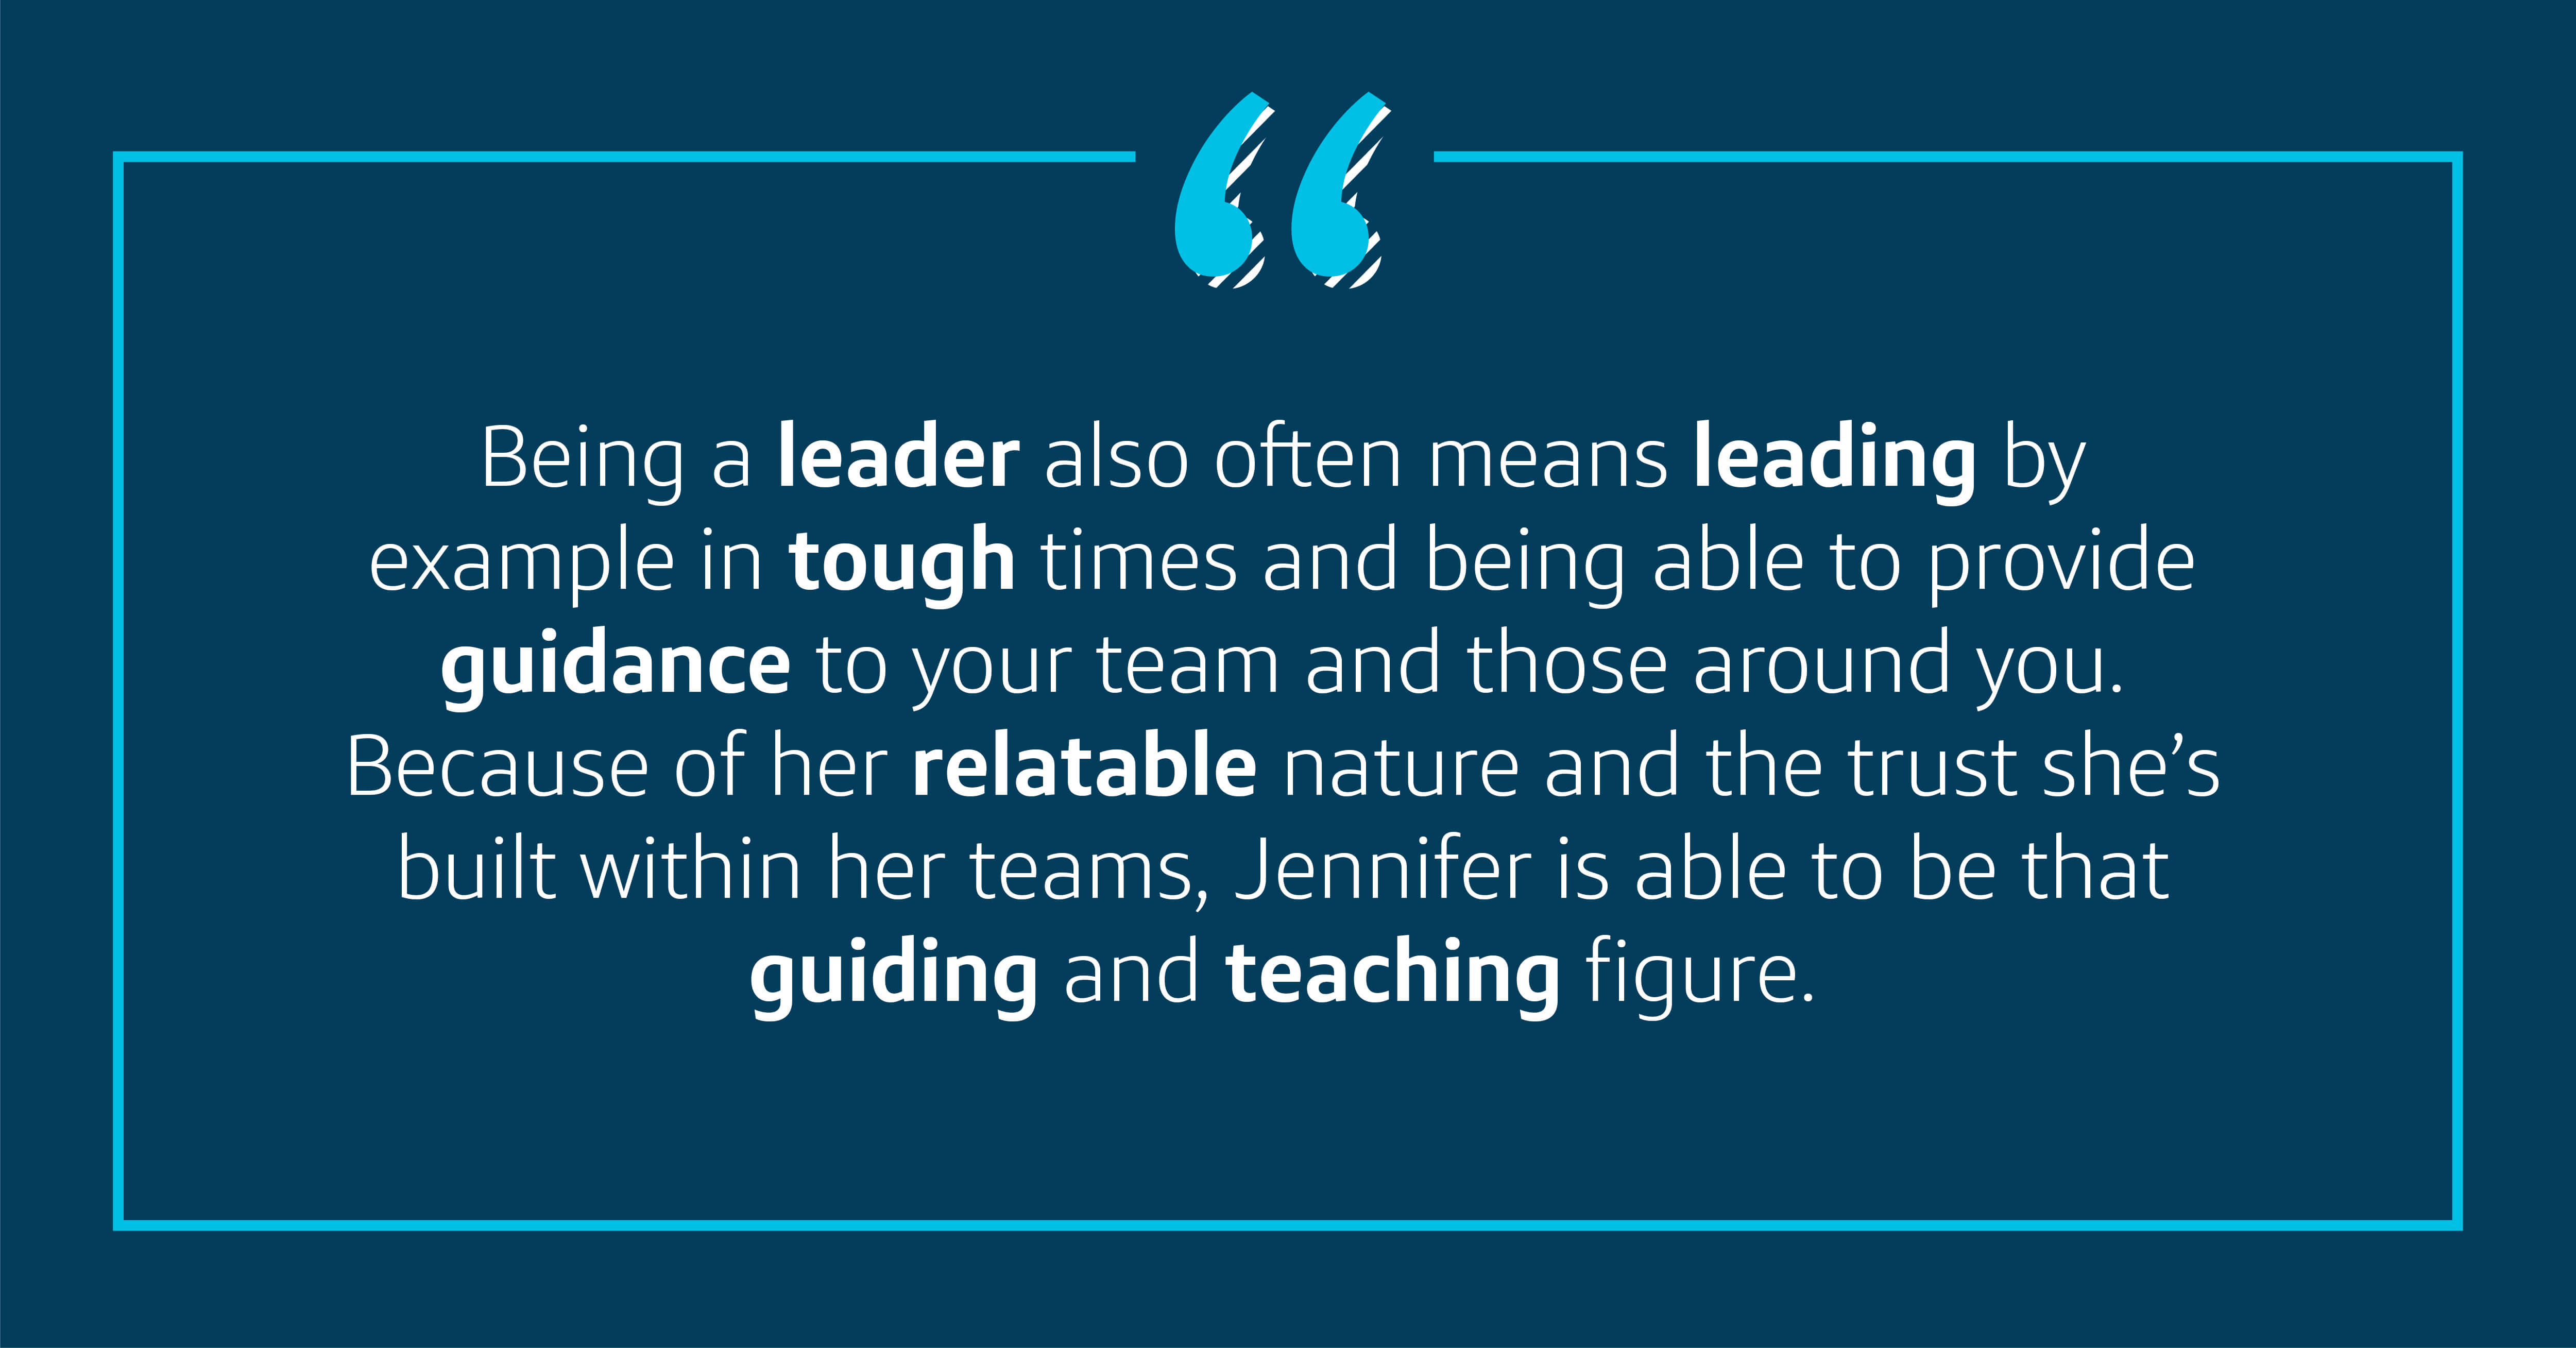 Being a leader also often means leading by example in tough times and being able to provide guidance to your team and those around you. Because of her relatable nature and the trust she's built within her teams, Jennifer is able to be that guiding teacher.